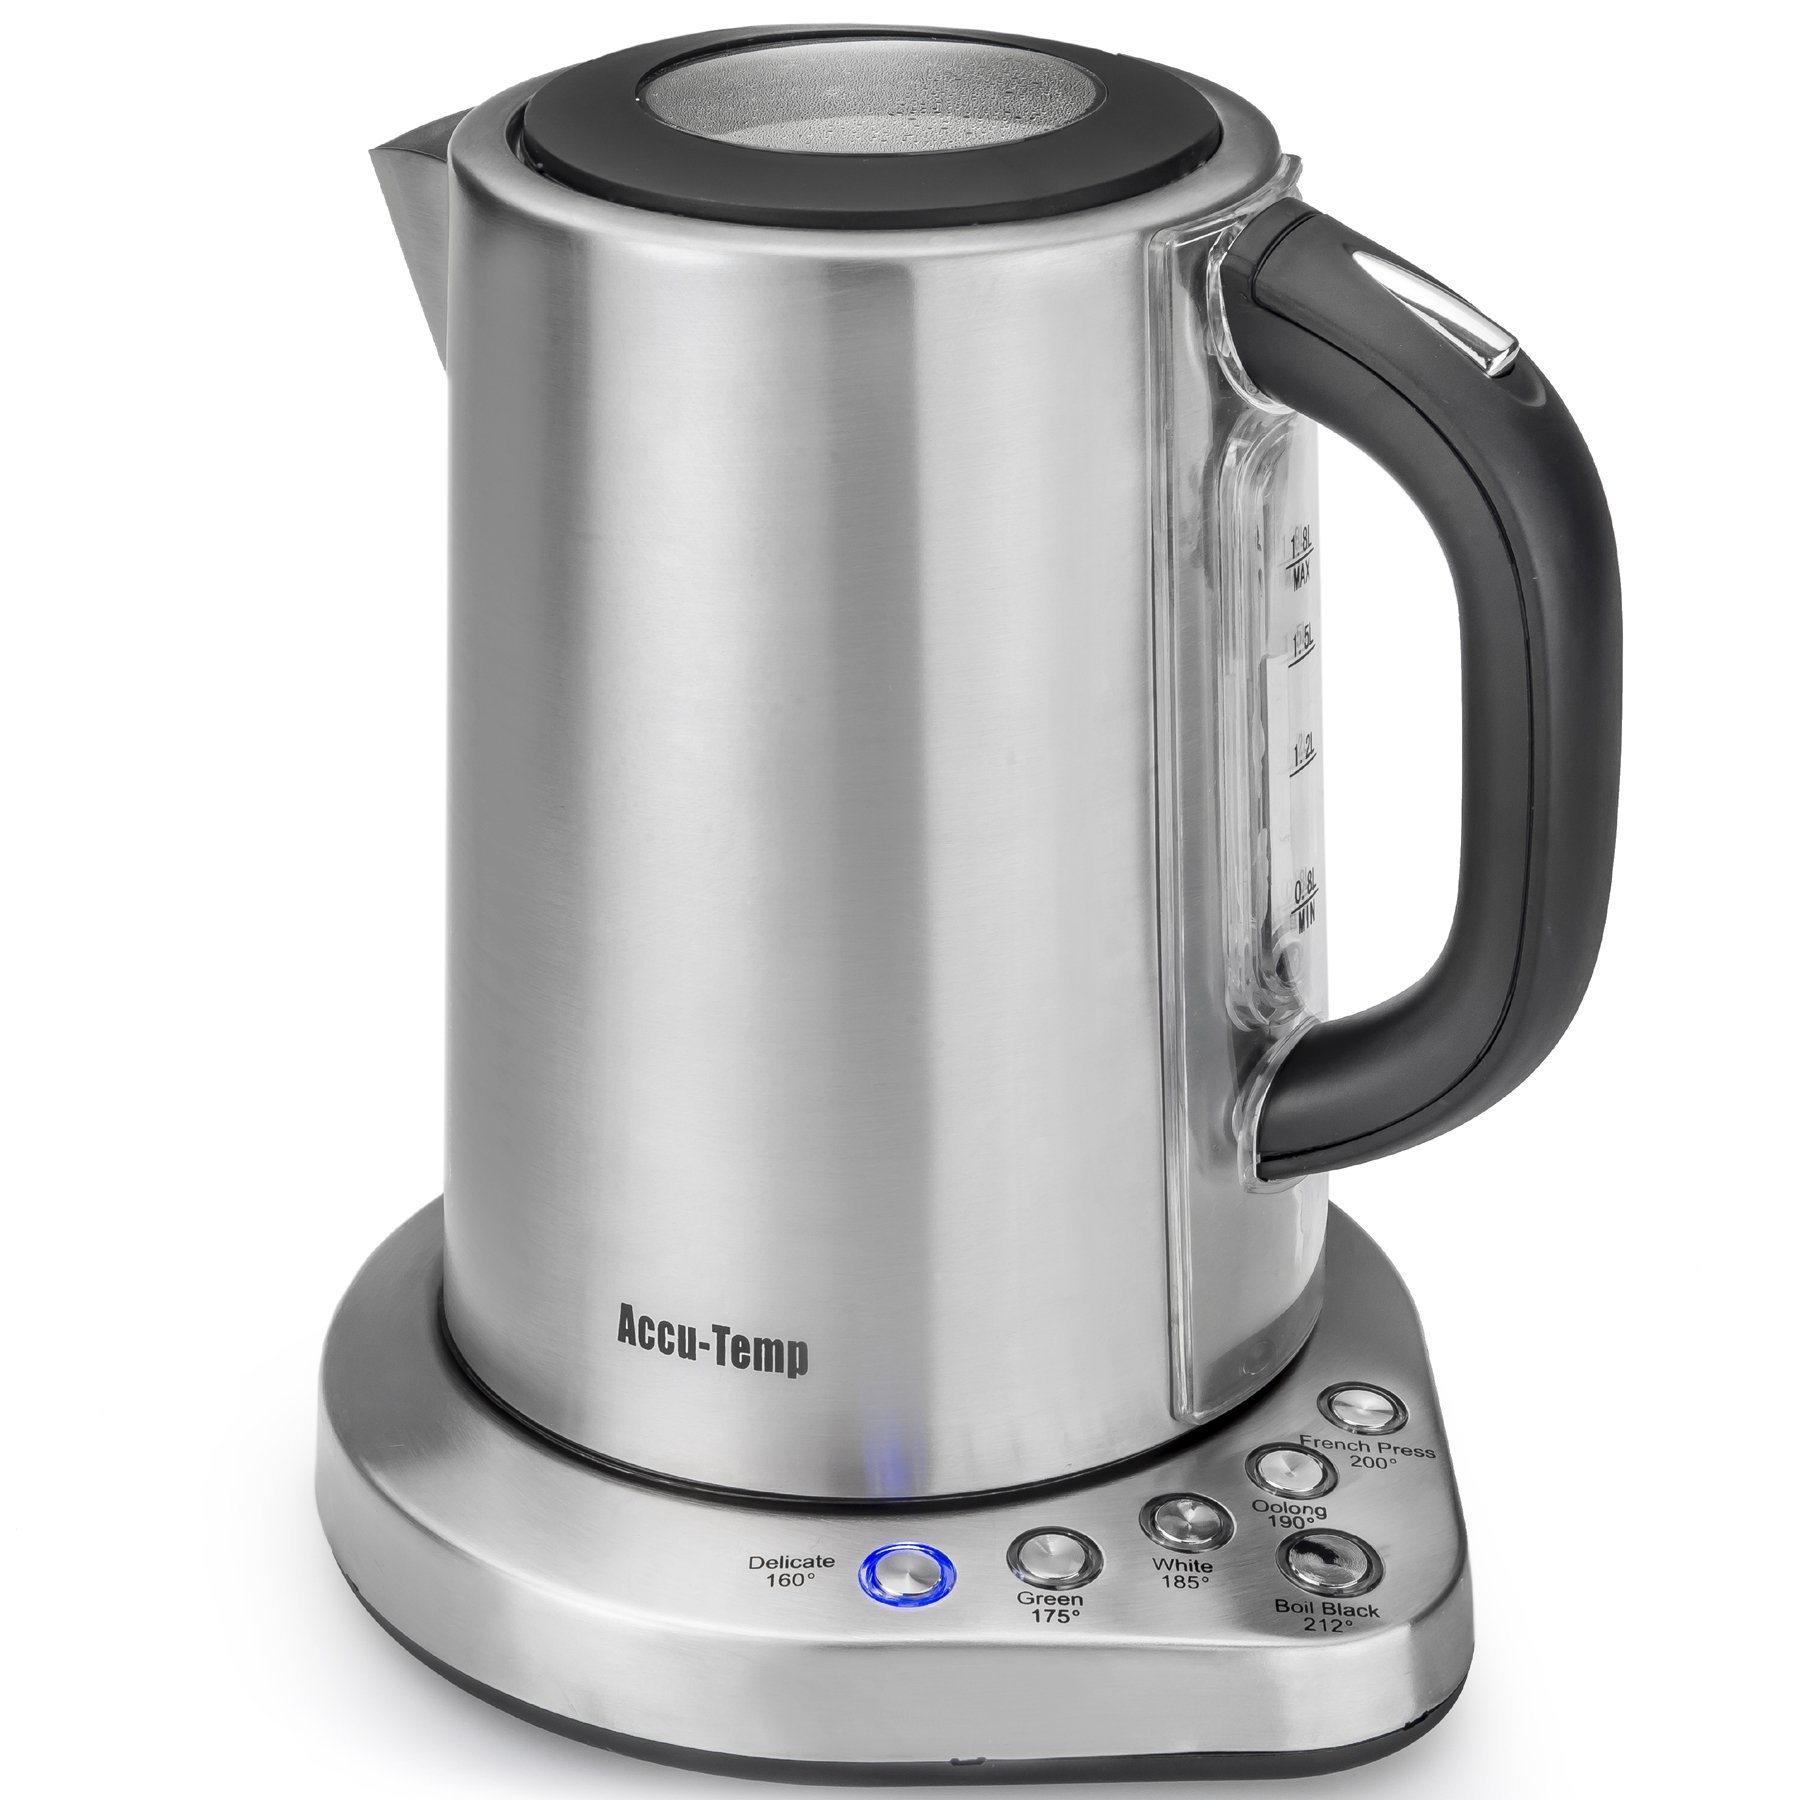 STX Accu-Temp Model STX-AT-EKSS Brushed Stainless Steel 1.8 Liter (7.6 cups), 1500 Watt, Cordless Electric Kettle Featuring 6 Precise Preset Temperatures and UL Certified Strix Temperature Controller